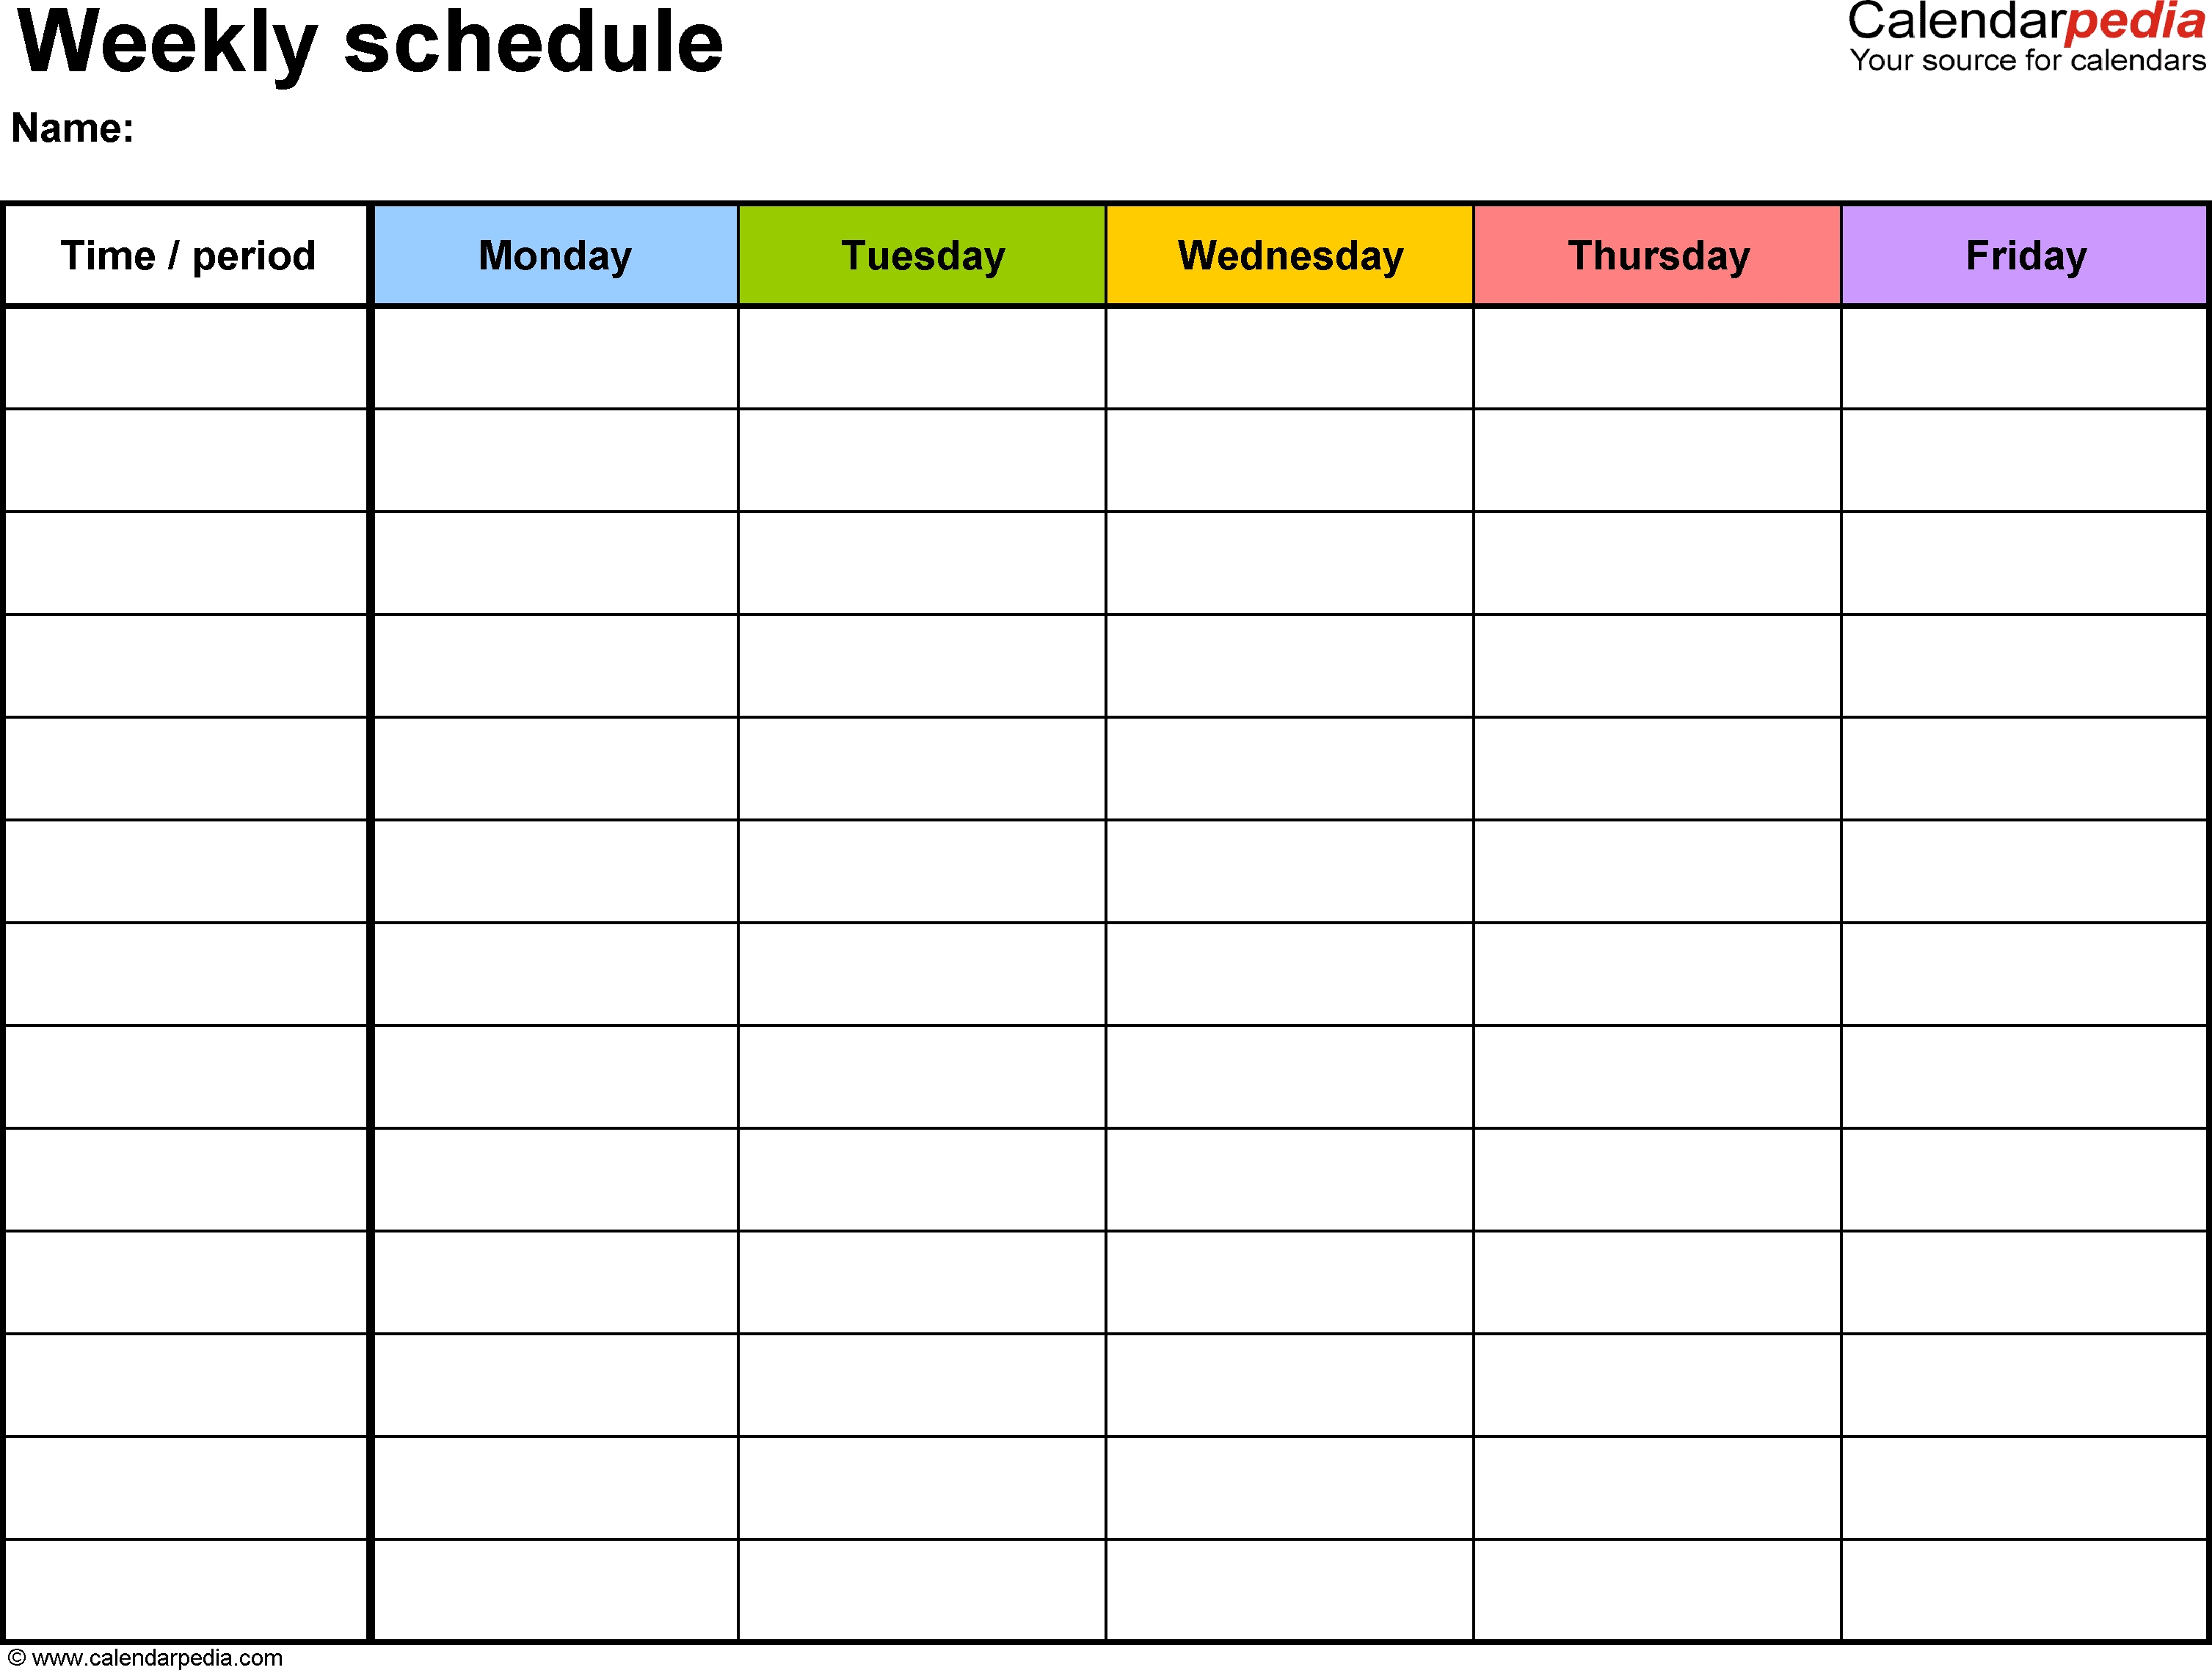 Free Weekly Schedule Templates For Word - 18 Templates with School Calendar Template Monday Thursday